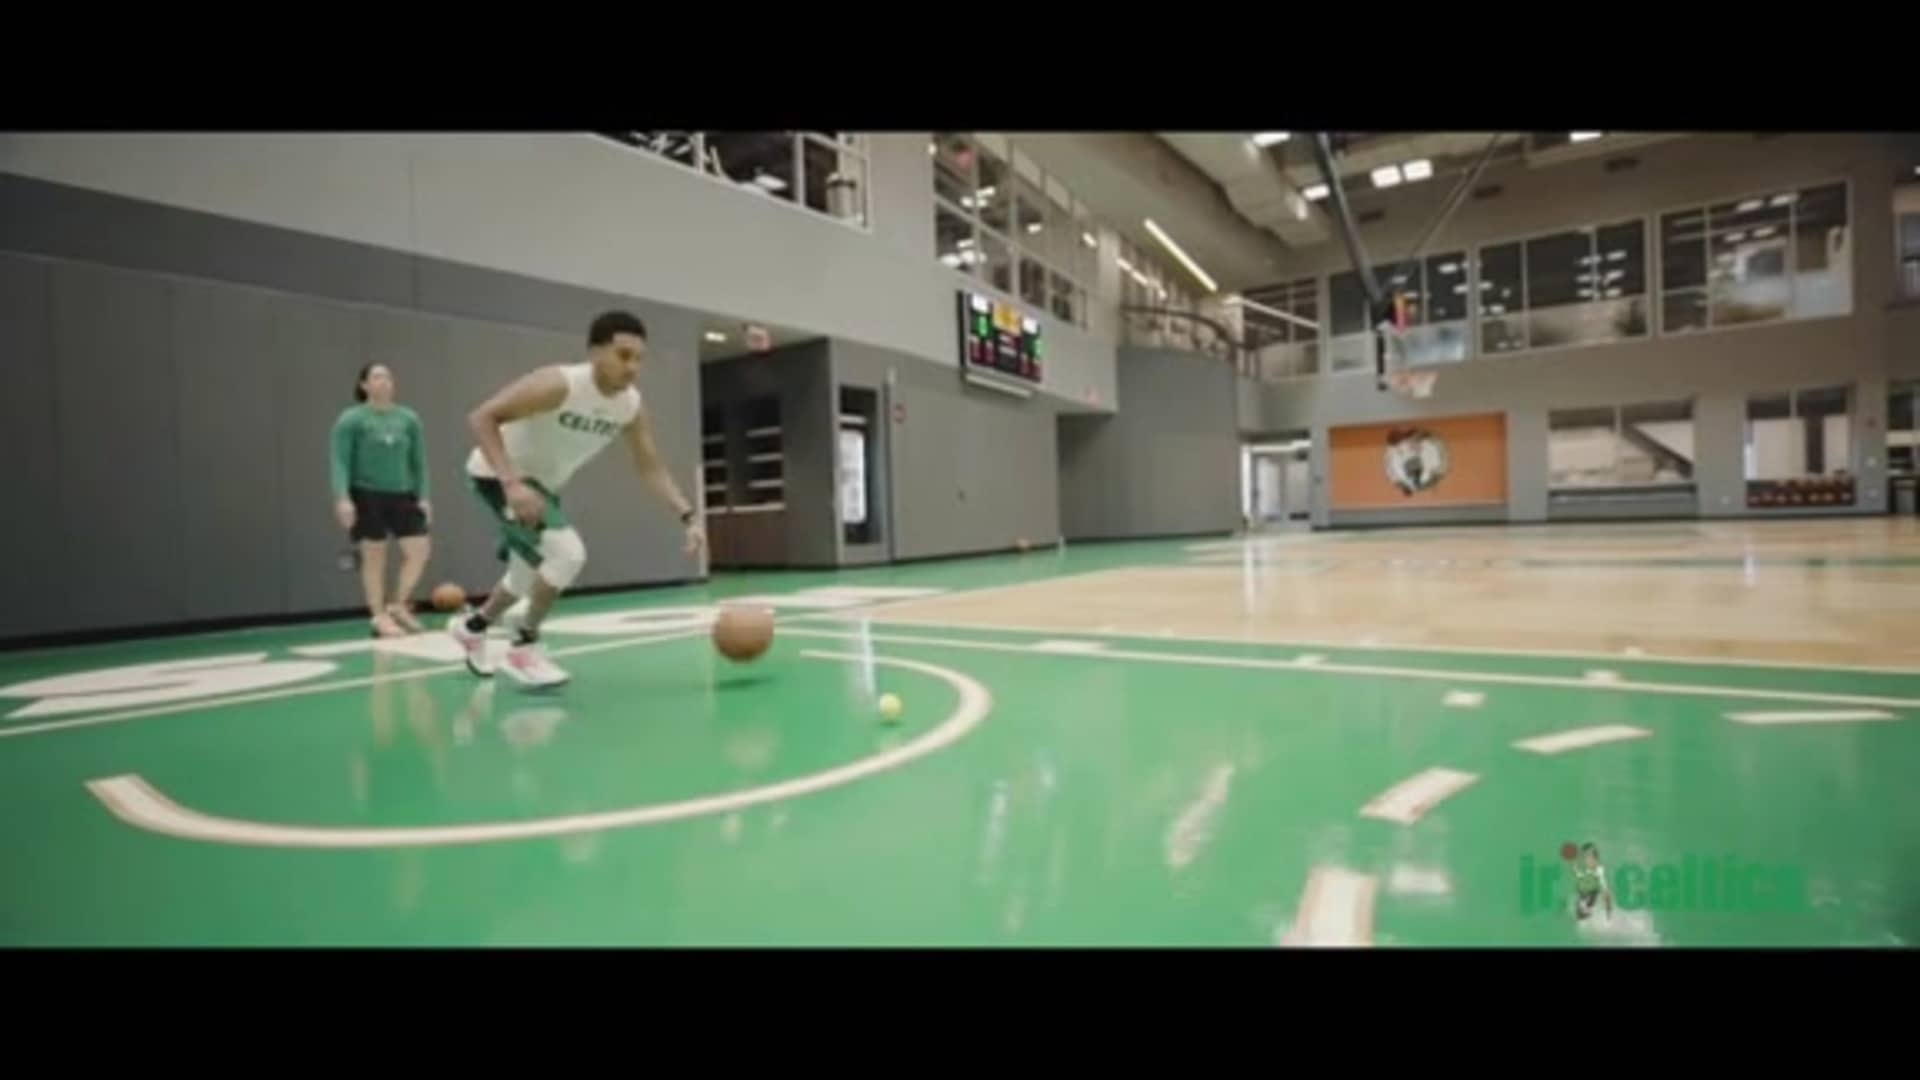 Jr. Celtics Player Tip - Ball Handling with Tremont Waters